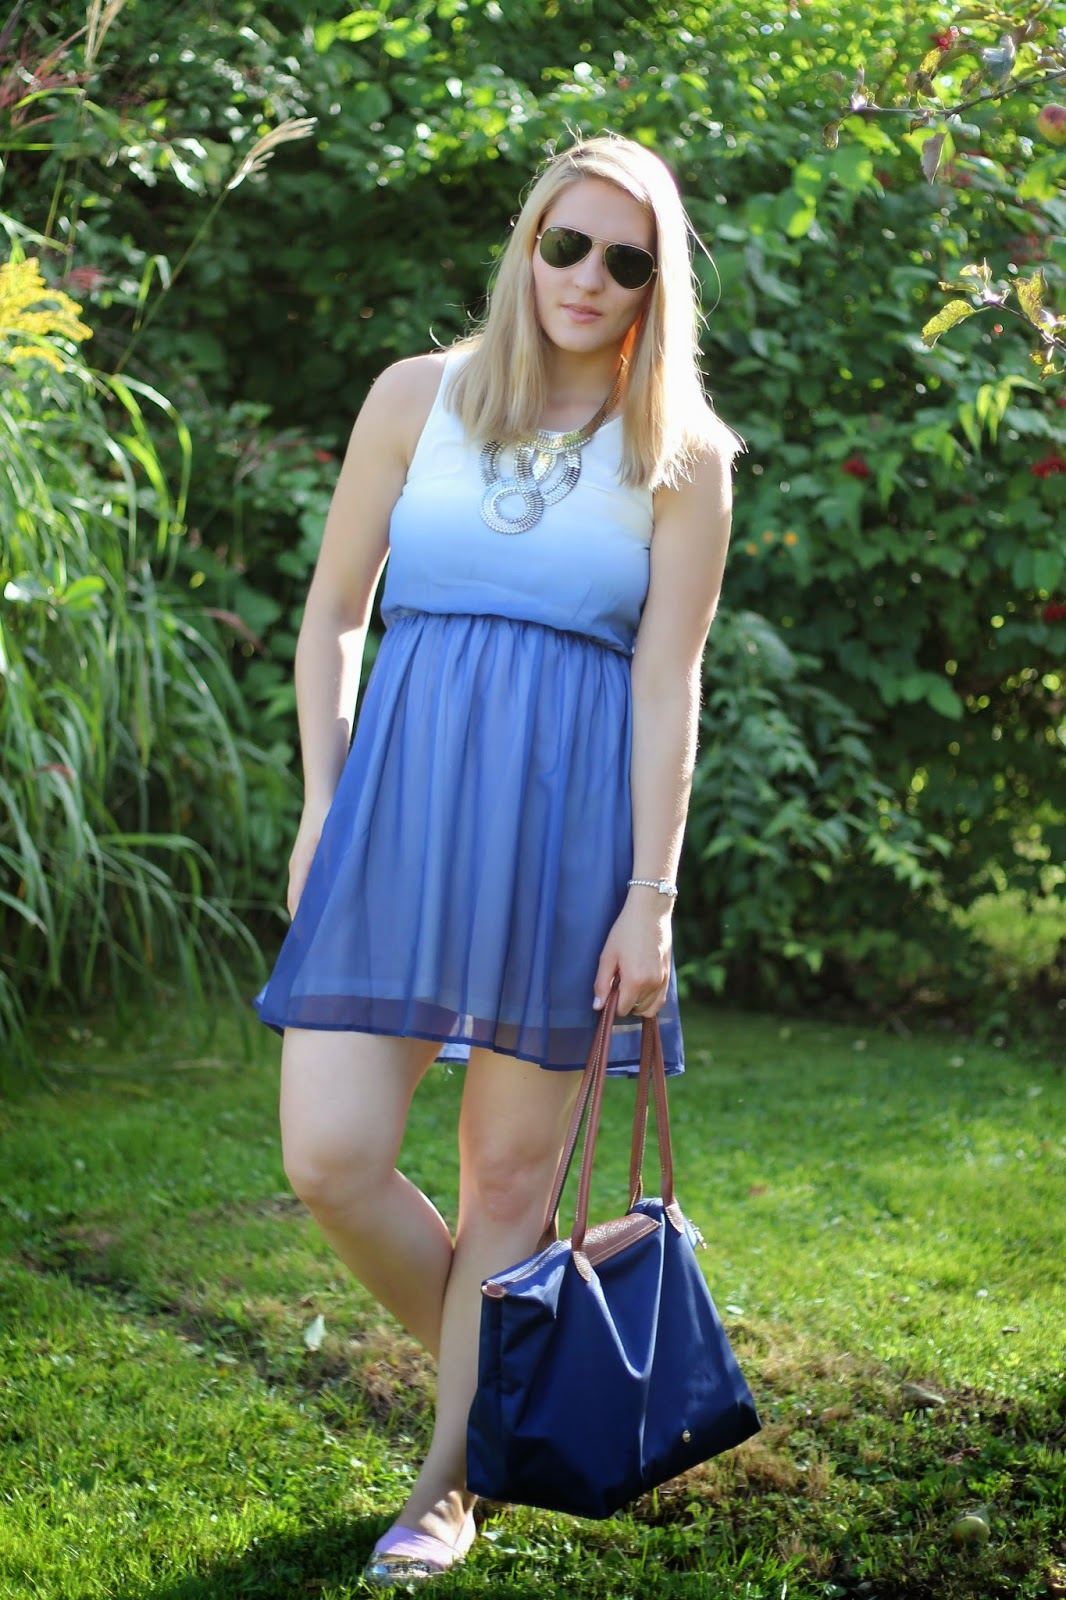 Fashionblogger Austria / Österreich / Deutsch / German / Kärnten / Carinthia / Klagenfurt / Köttmannsdorf / Spring Look / Classy / Edgy / Summer / Summer Style 2014 / Summer Look / Fashionista Look /   / Summer Look / Dress / H&M / Longchamp Le Pliage Large Blue / Pink Espadrilles H&M Blogger Must Have / Big Silver Statement Necklace Oasap / Ray Ban Aviator Sunglasses /